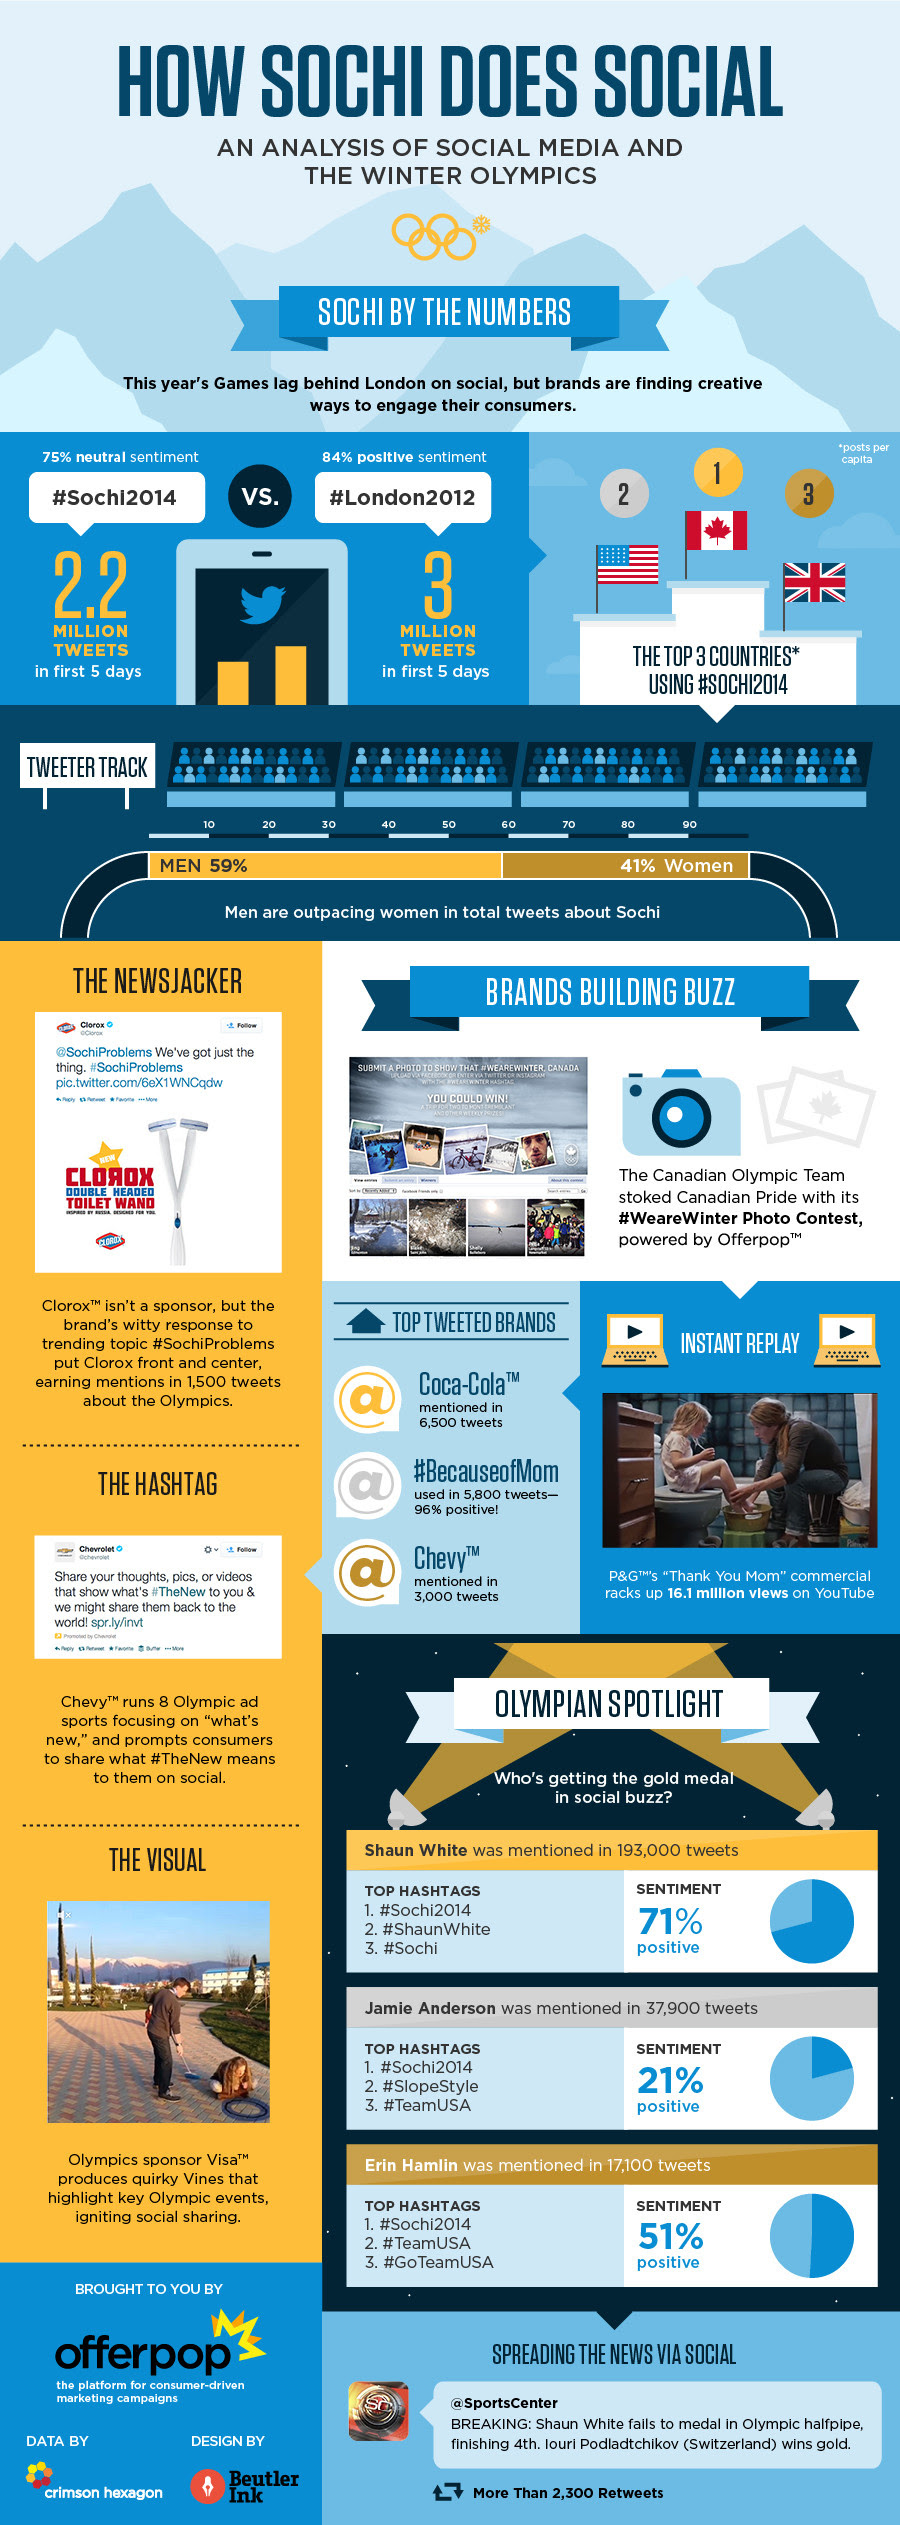 Sochi By the Numbers - An Analysis Of Social Media And The Winter Olympics - infographic